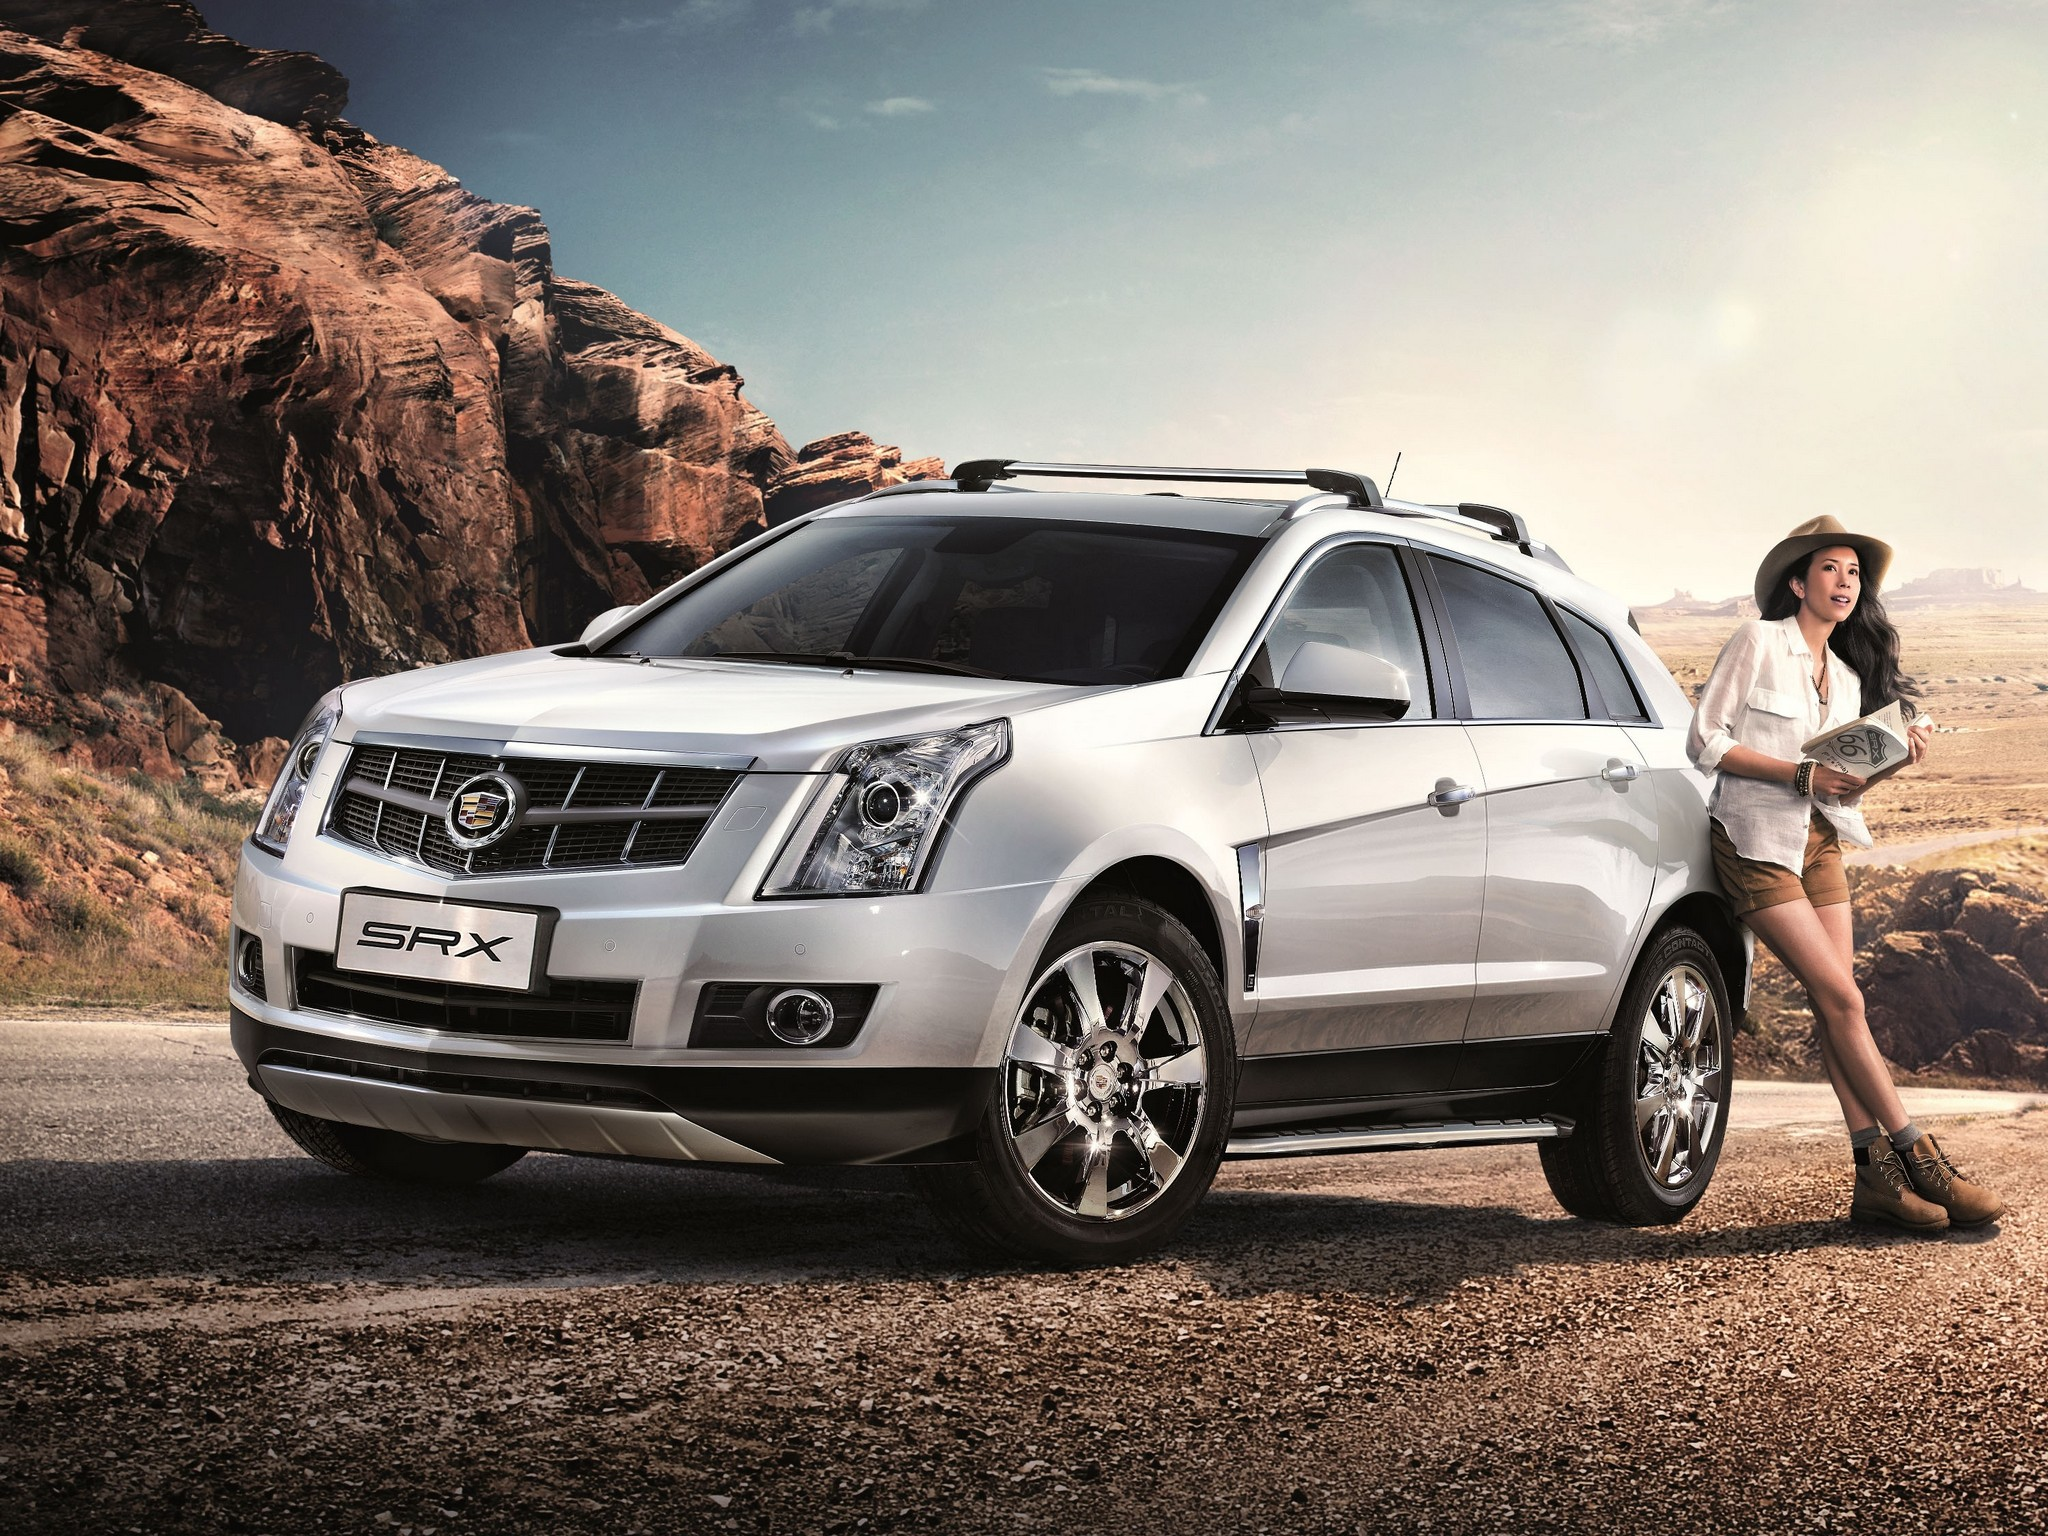 cadillac wallpaper cars hd srx images background